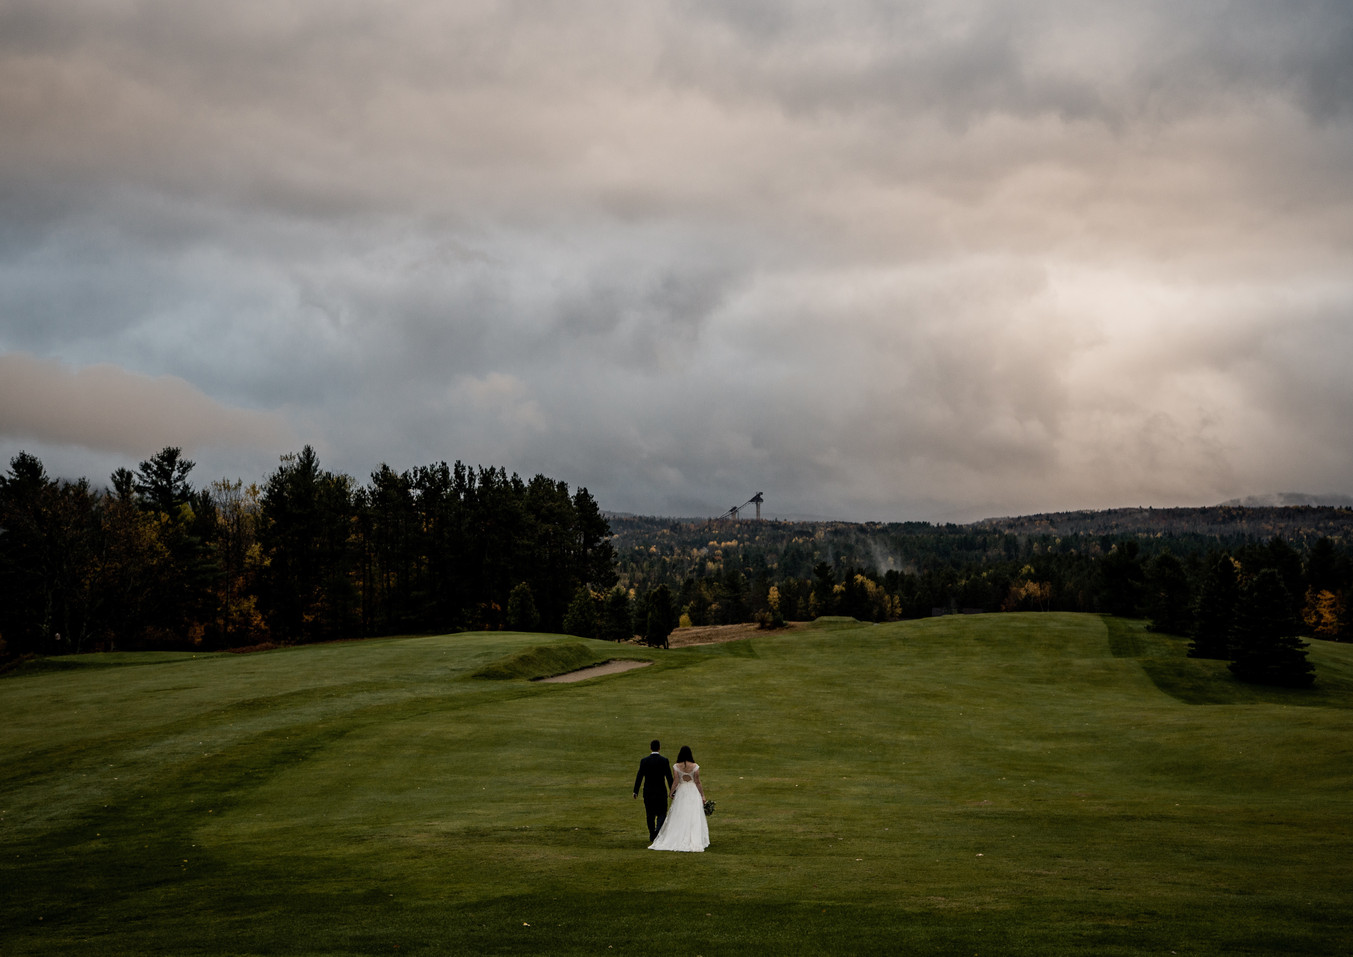 Monica and Zach's wedding at the Lake Placid Club